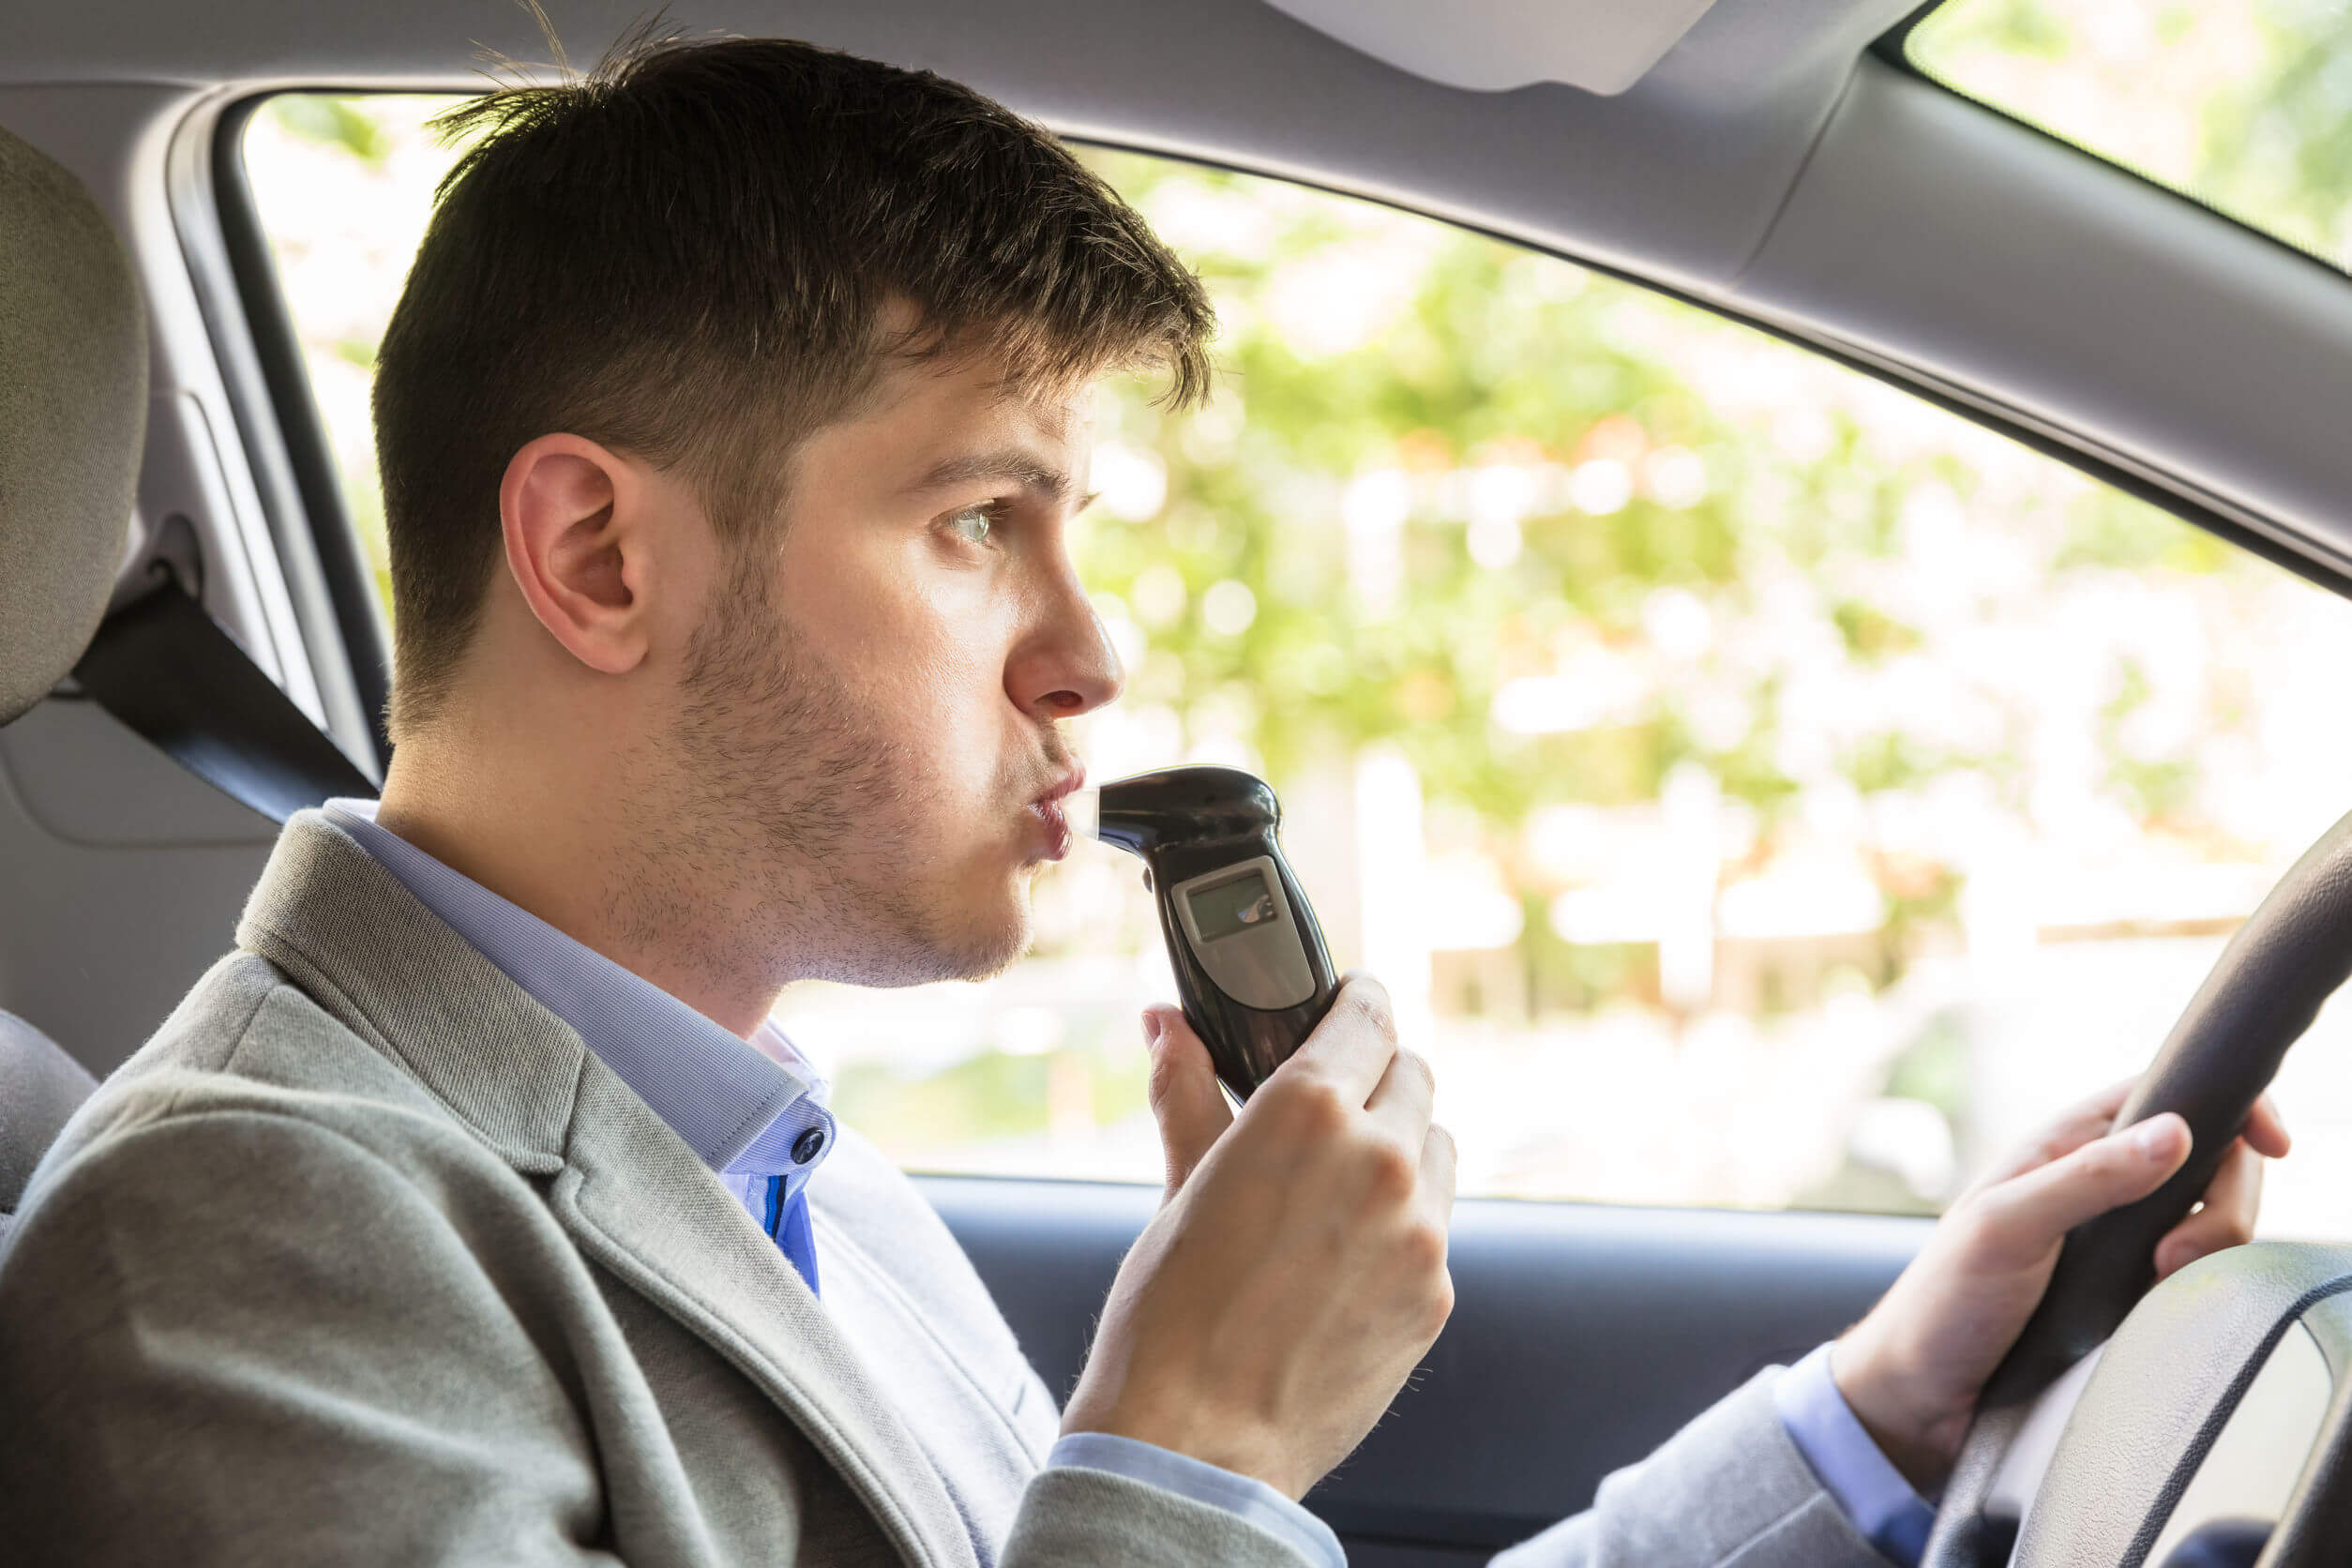 Penalties for DWI in Texas